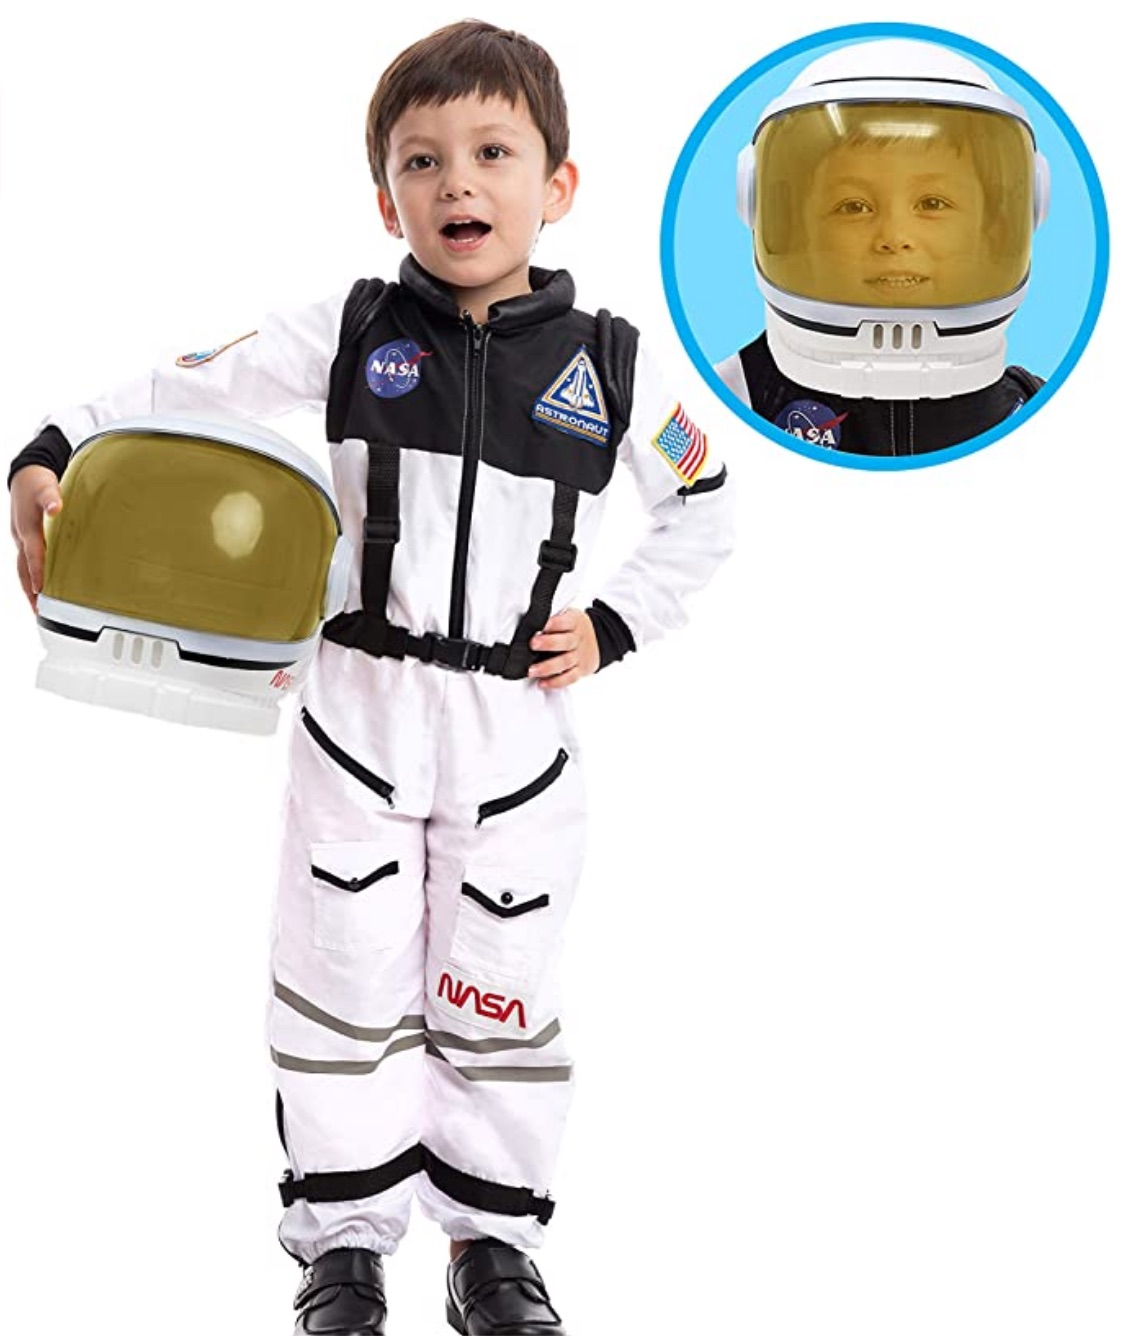 Geek Daily Deals 100420 nasa costume